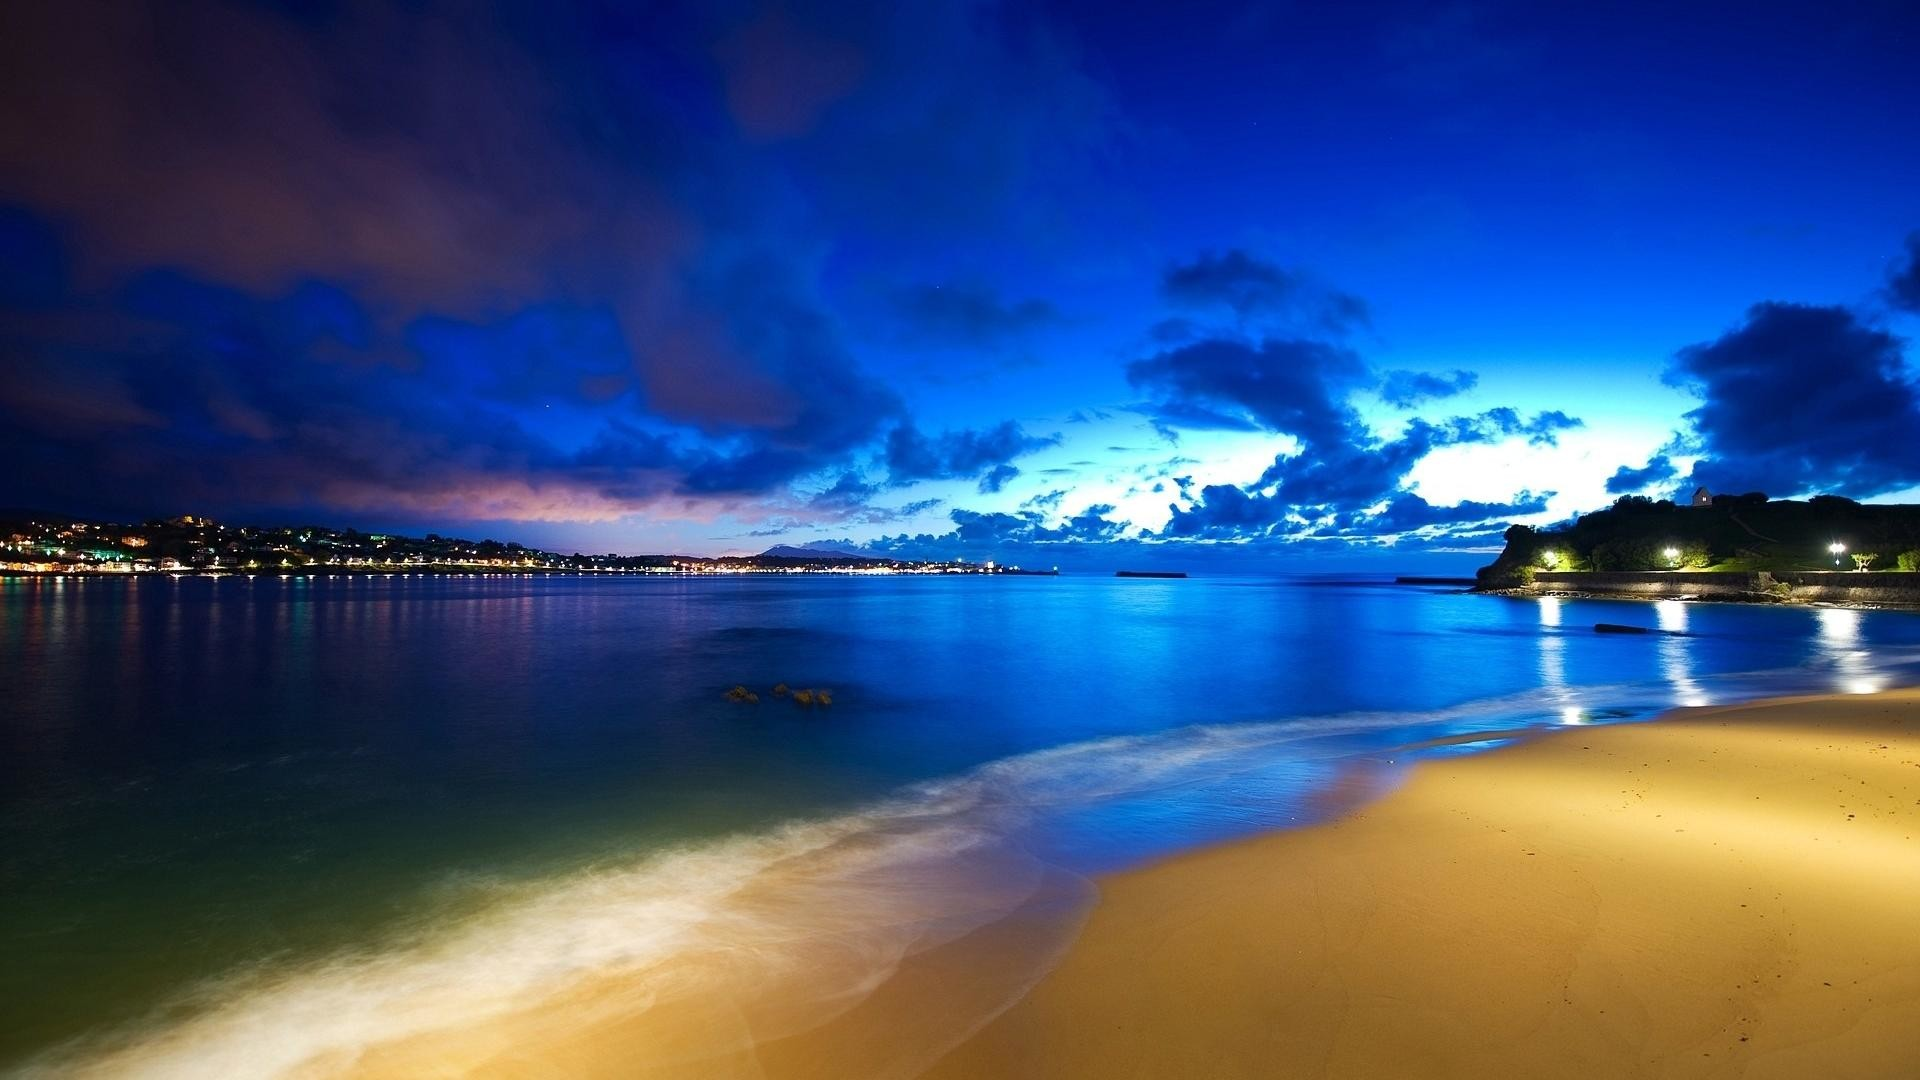 the blue sky coast scenic desktop backgrounds widescreen and hd . …